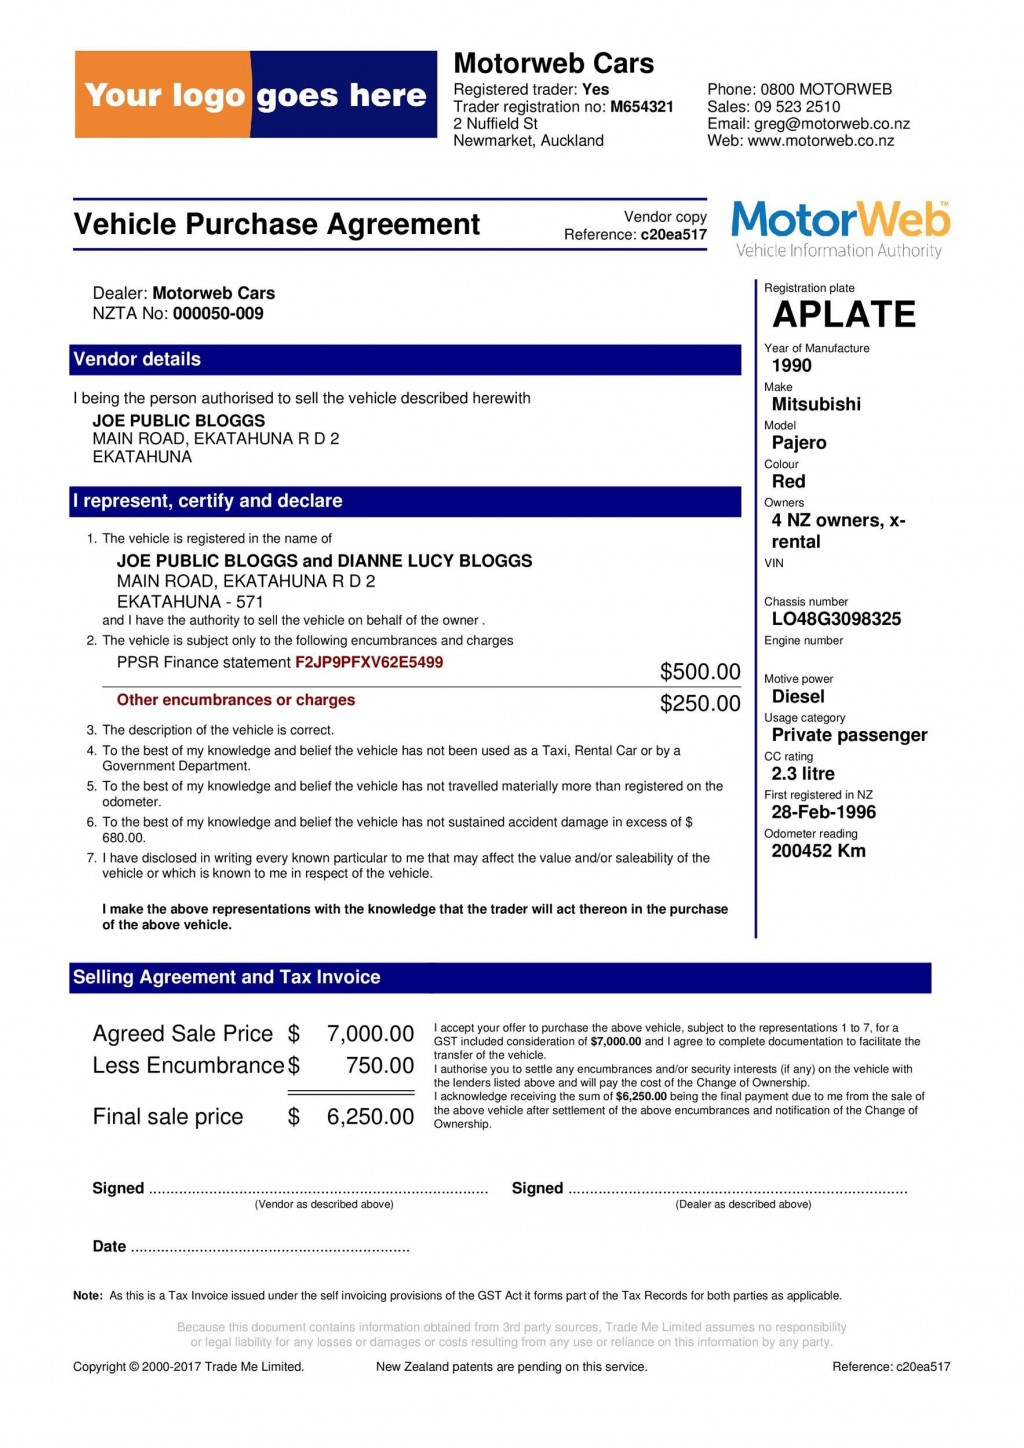 006 Surprising Vehicle Purchase Order Template Photo  Used Car MotorLarge